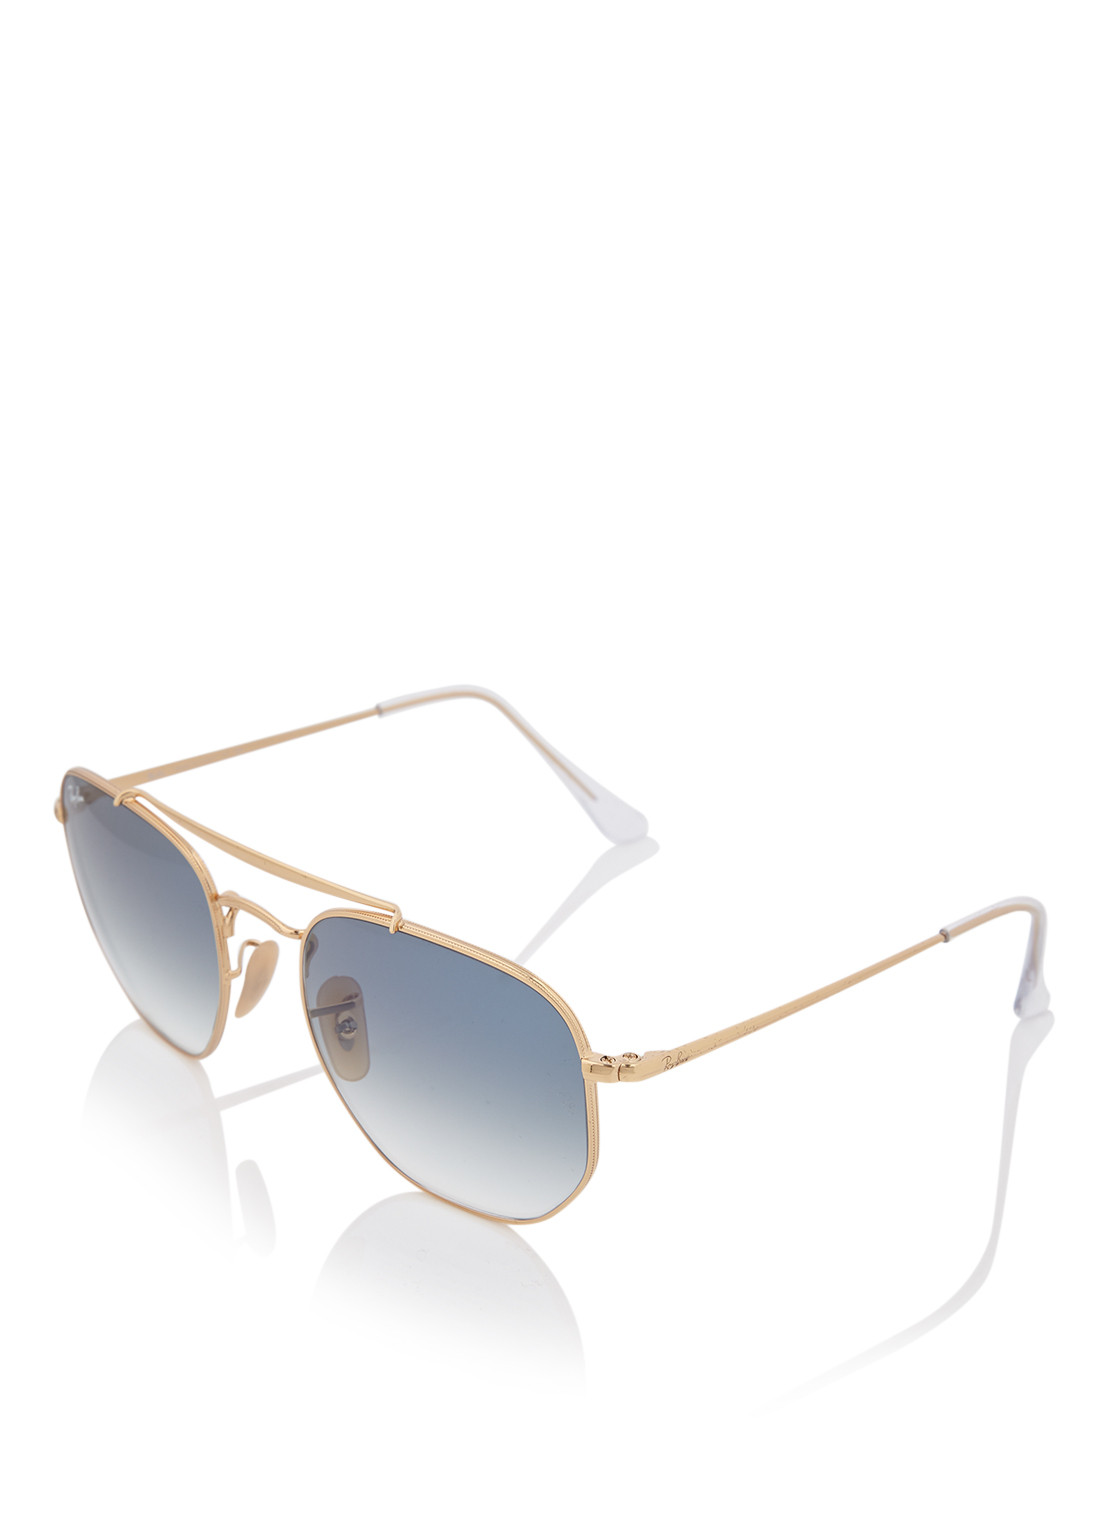 Ray Ban Zonnebril RB3648